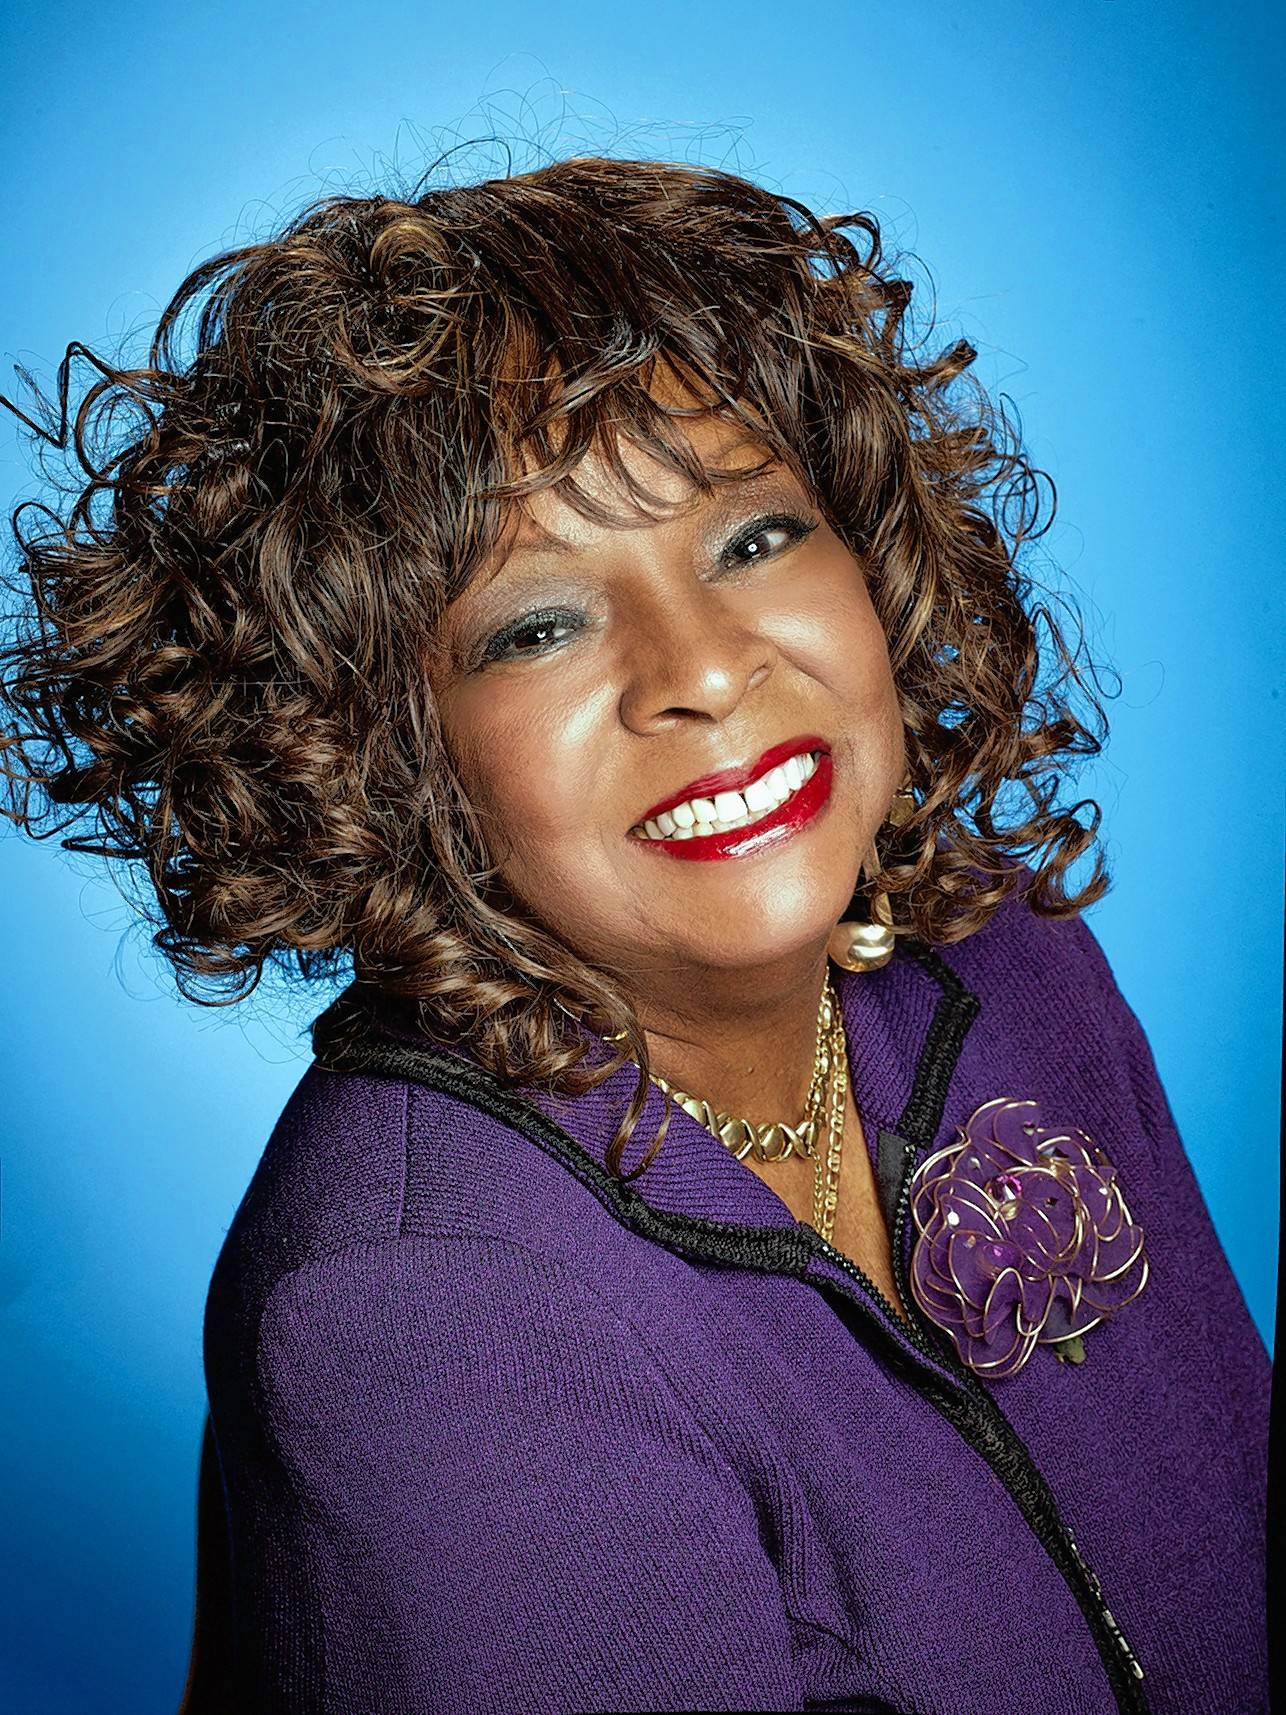 """(Music) is still changing the world,"" says Martha Reeves. She and The Vandellas will play their hits Sunday, March 12, at the Arcada Theatre in St. Charles."